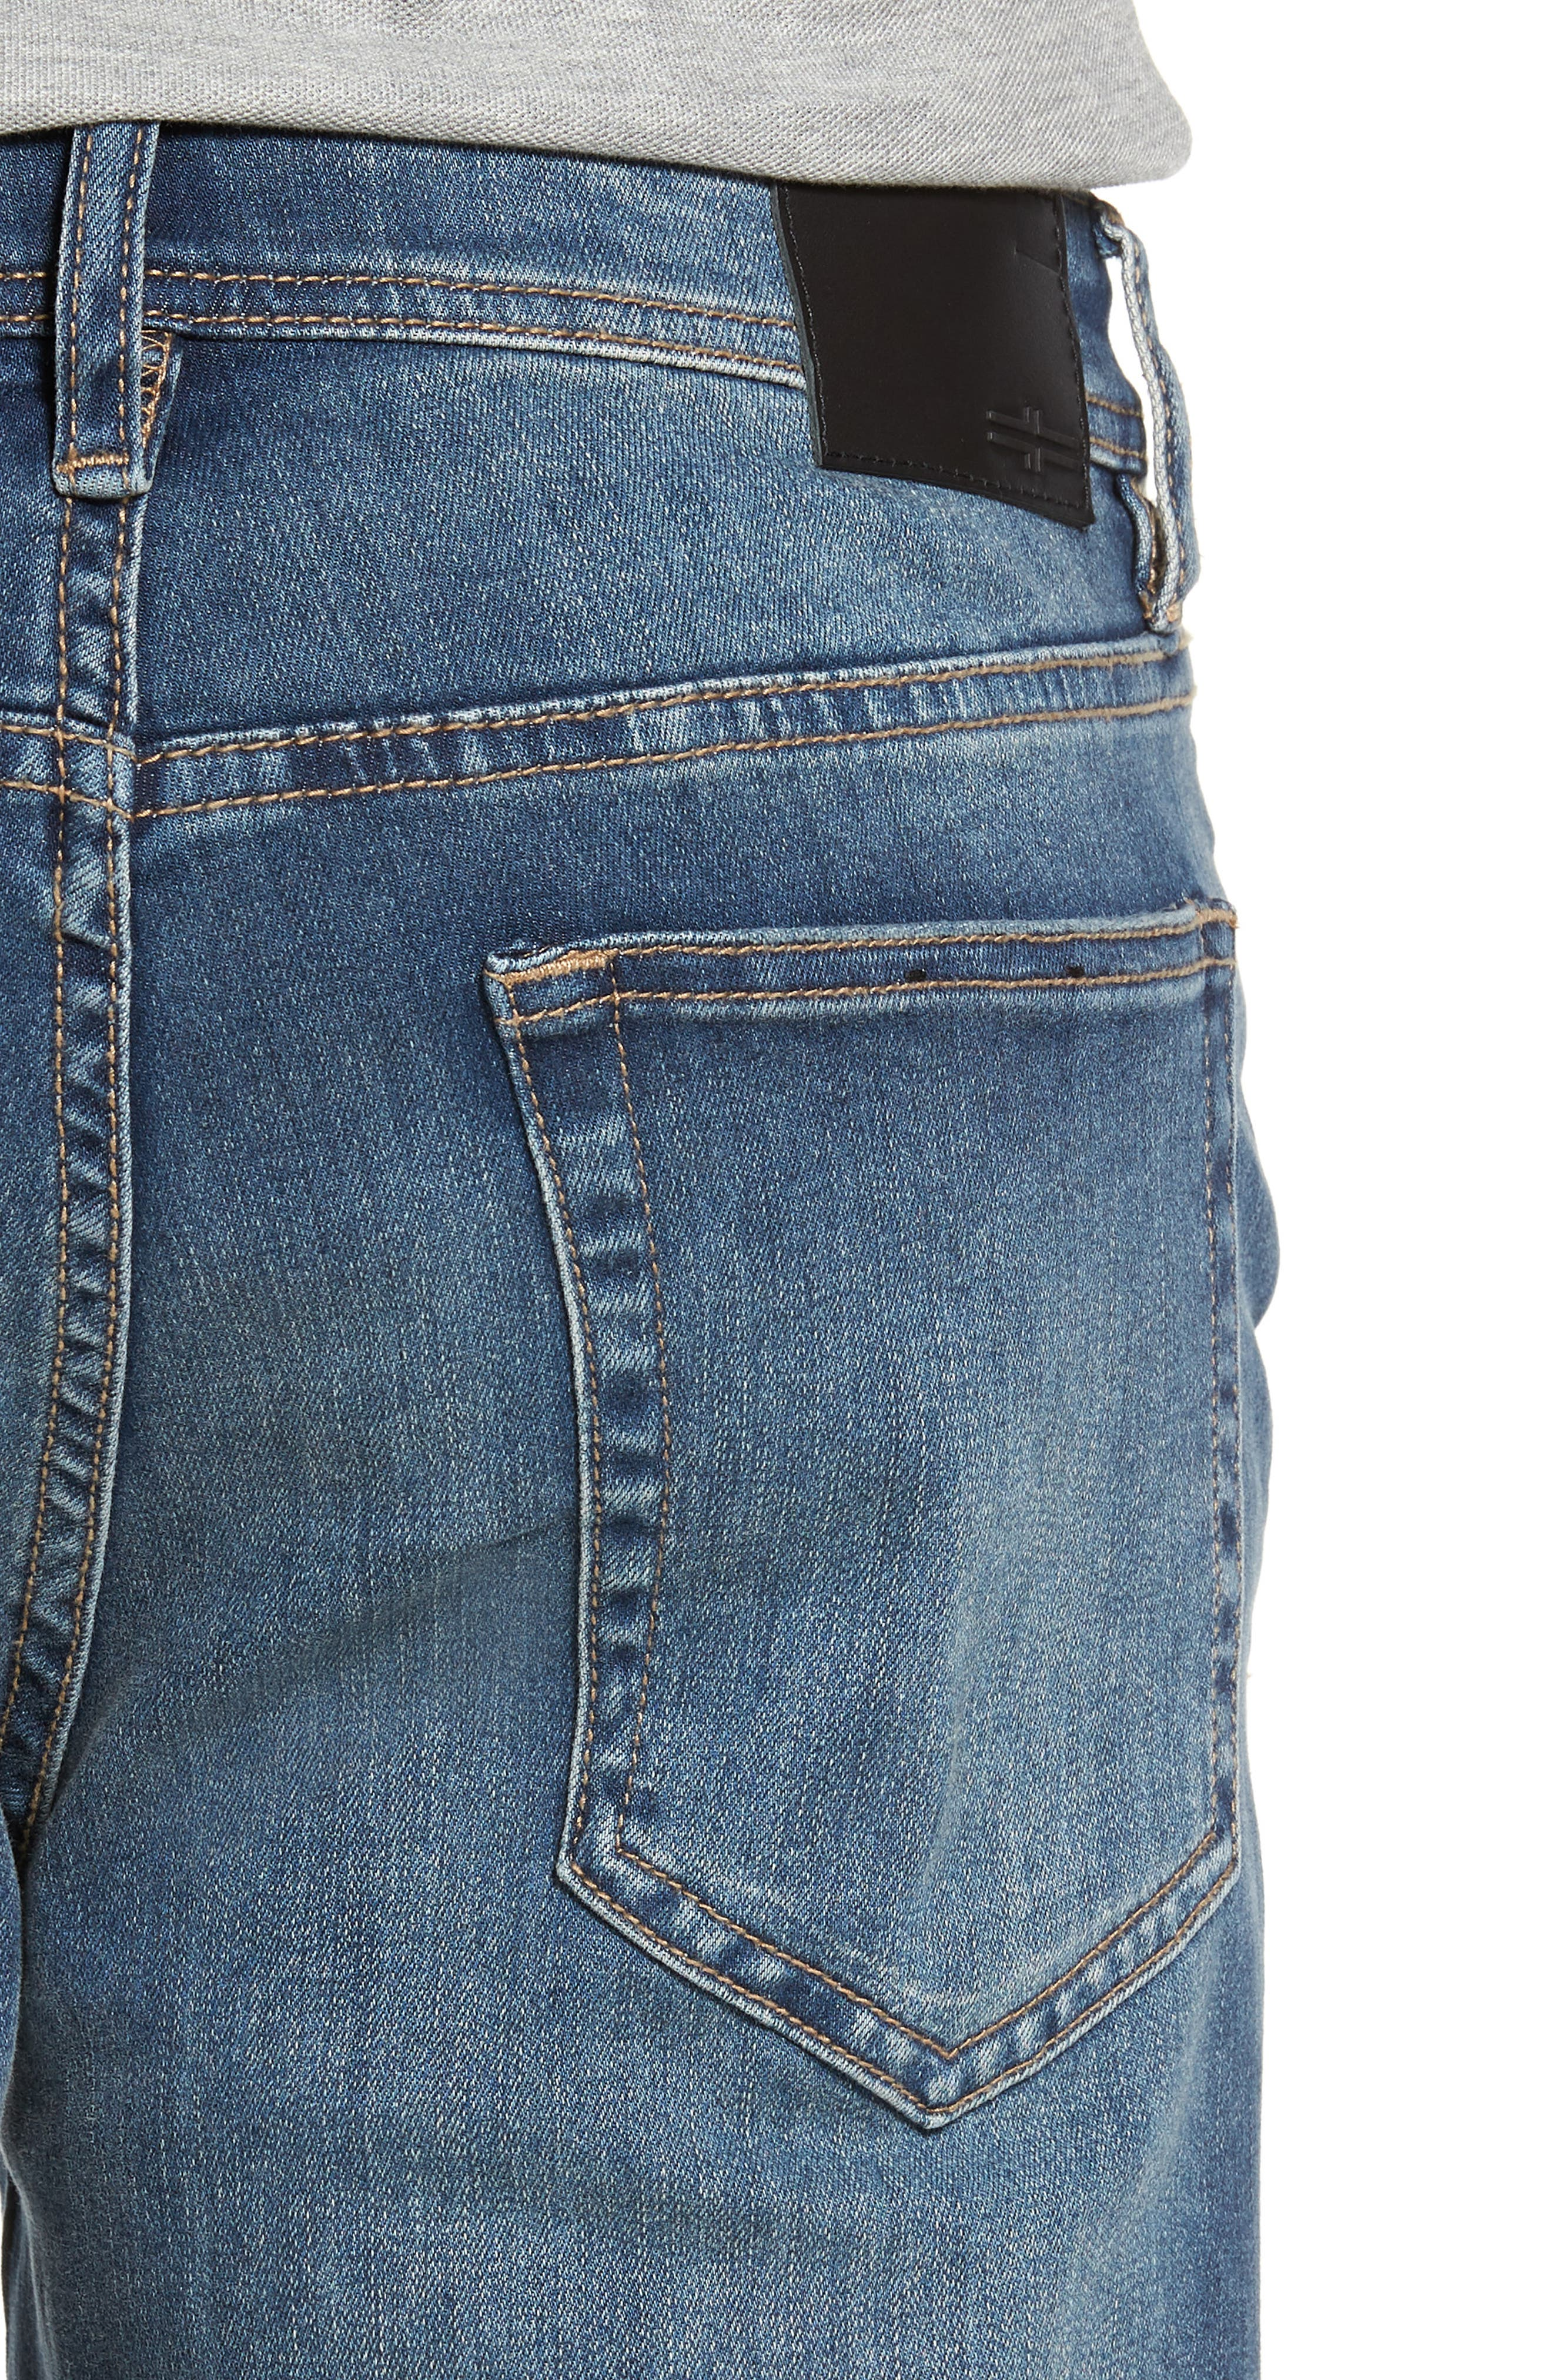 Jeans Co. Regent Relaxed Fit Jeans,                             Alternate thumbnail 4, color,                             CHATSWORTH